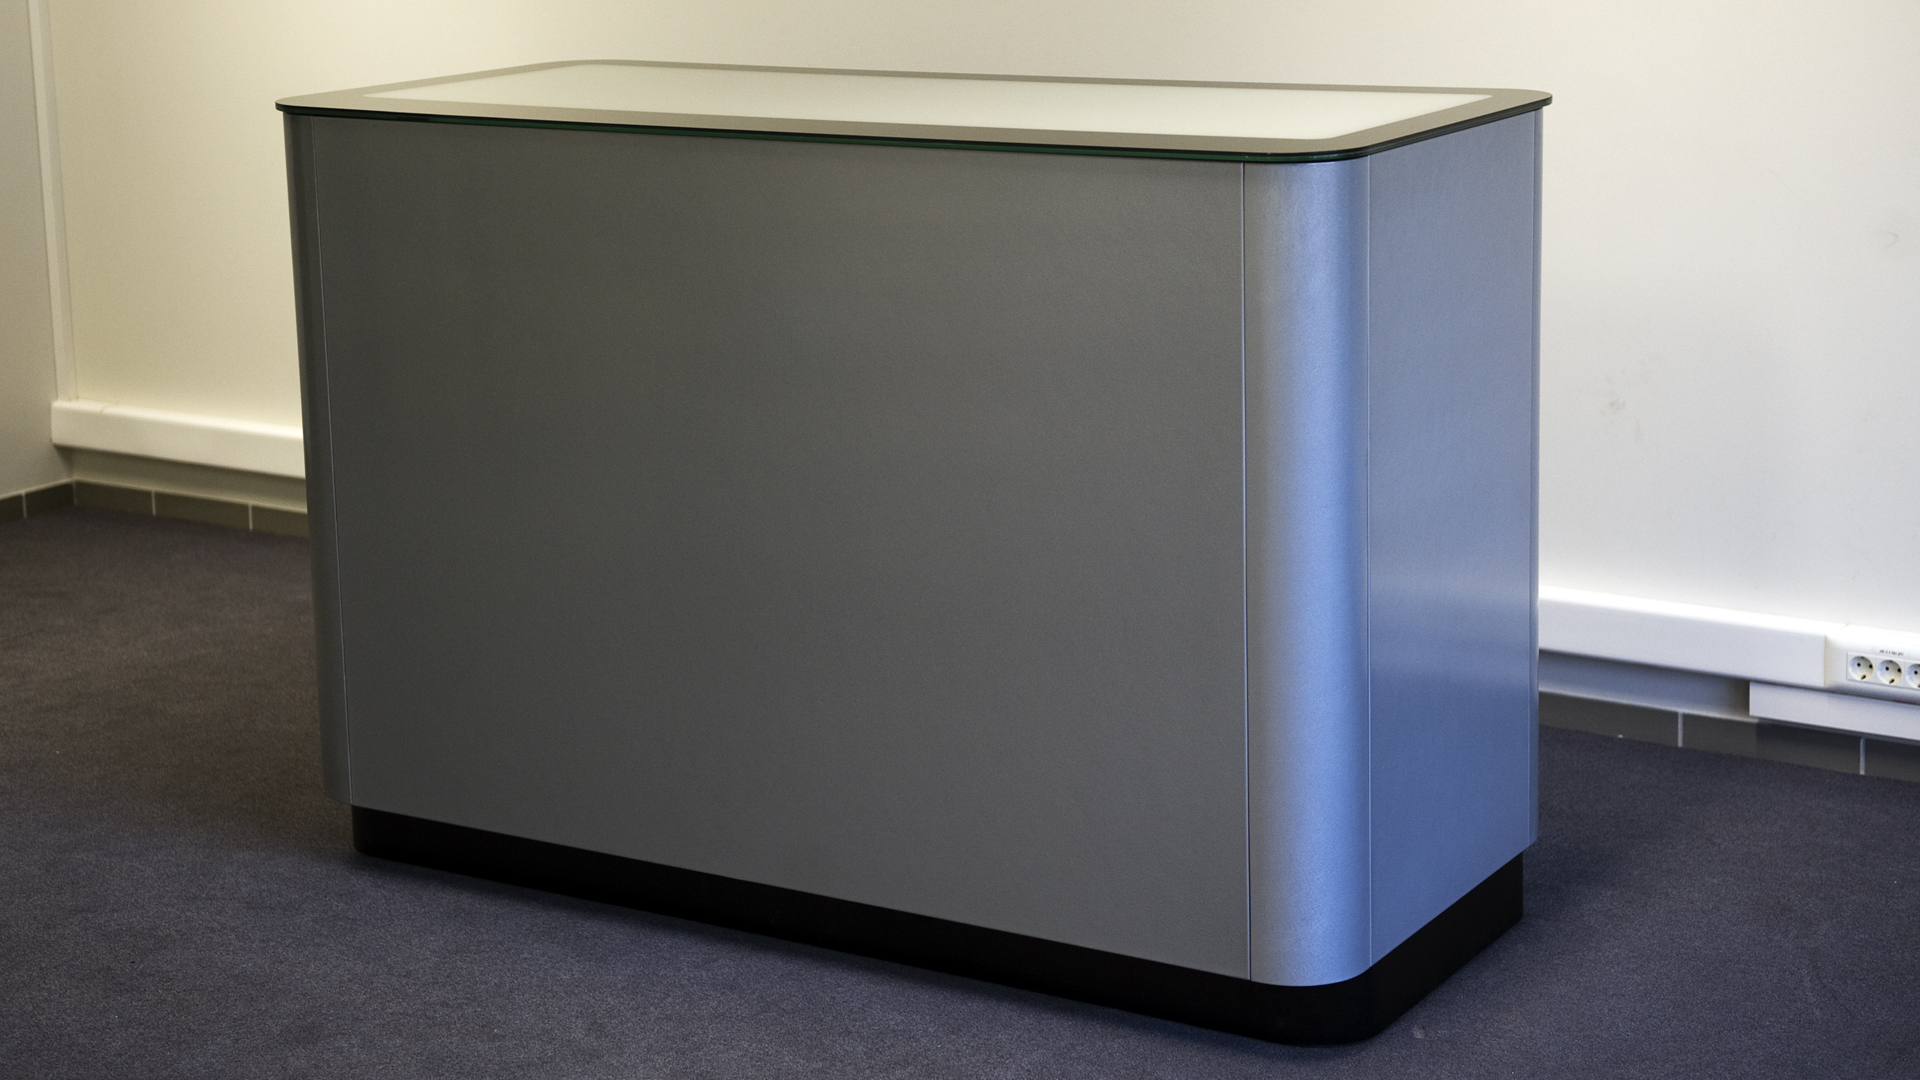 Ibar build for Surface Lab International by Touchez